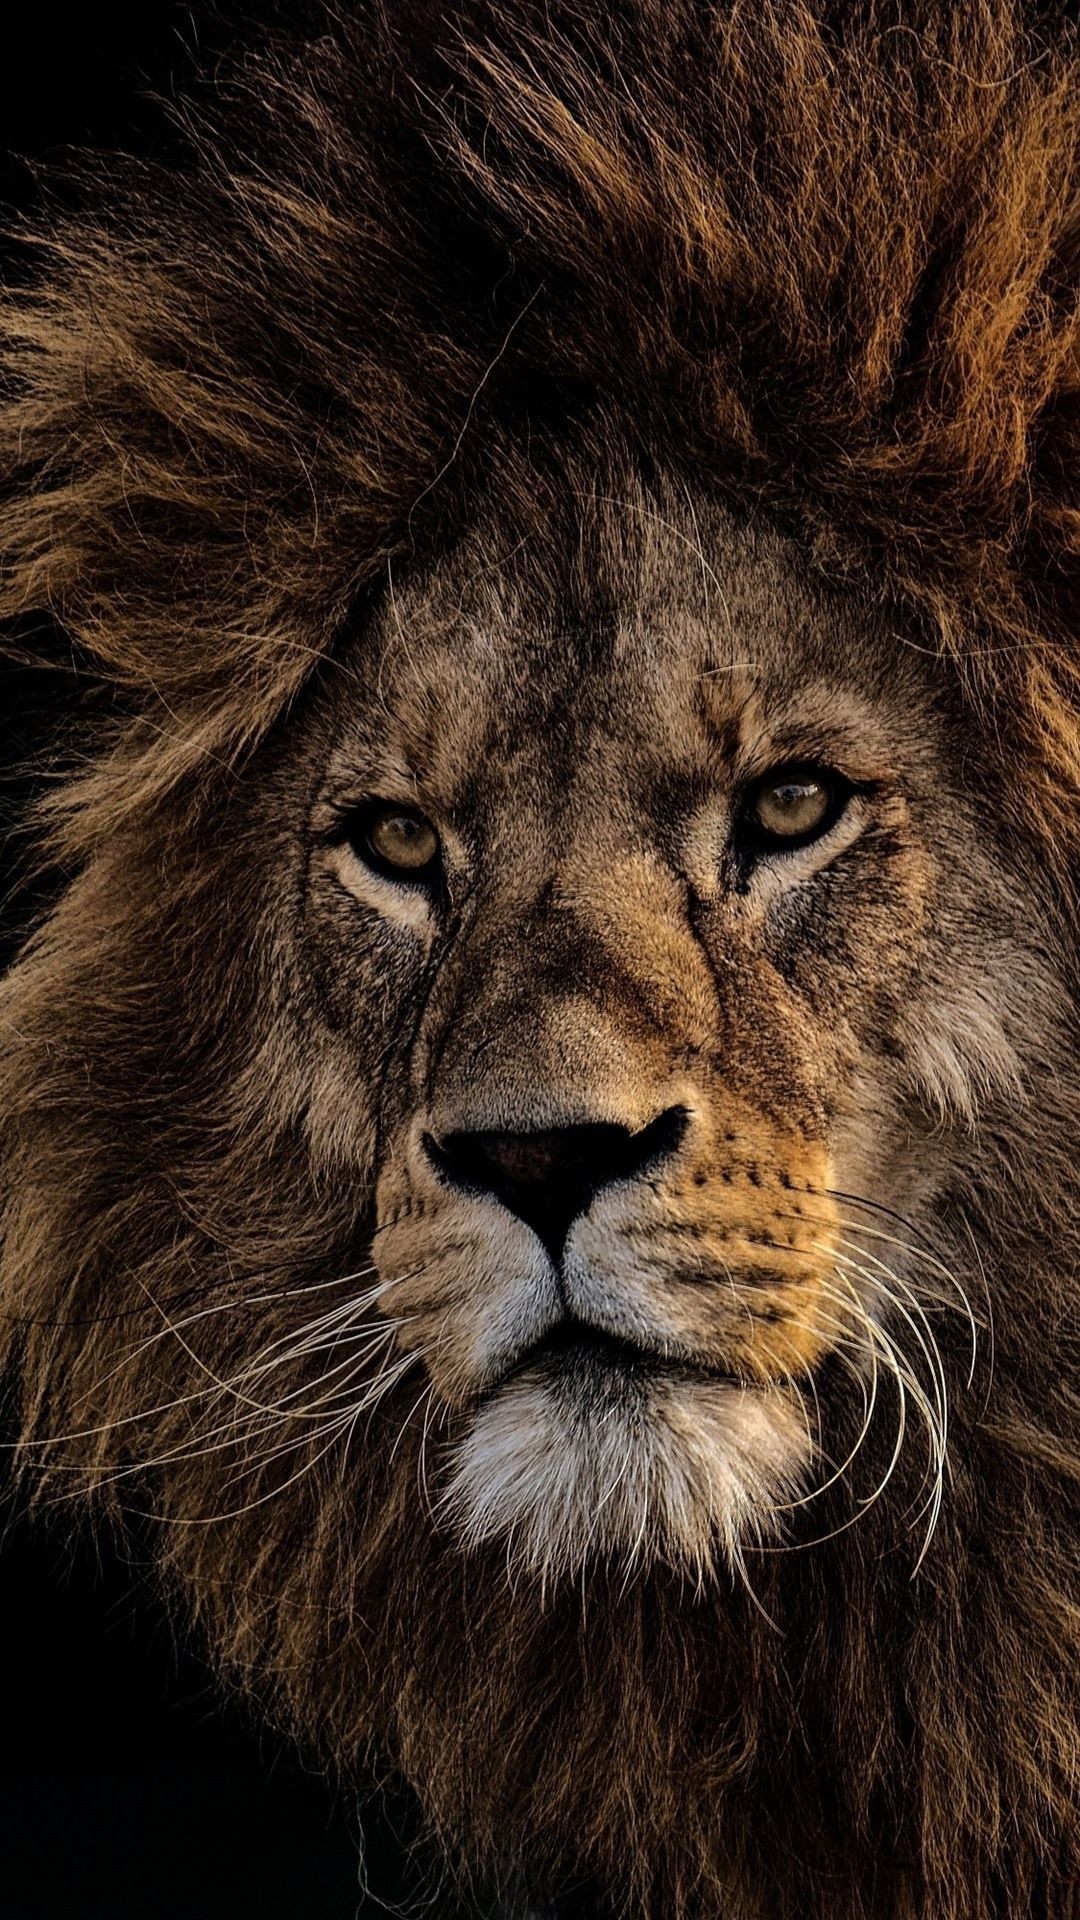 Best 5 Black Lion Wallpapers Background For Your Android Or Iphone Wallpapers Android Iphone Wallpape Leones Animales Fotos De Animales Salvajes Animales Hd